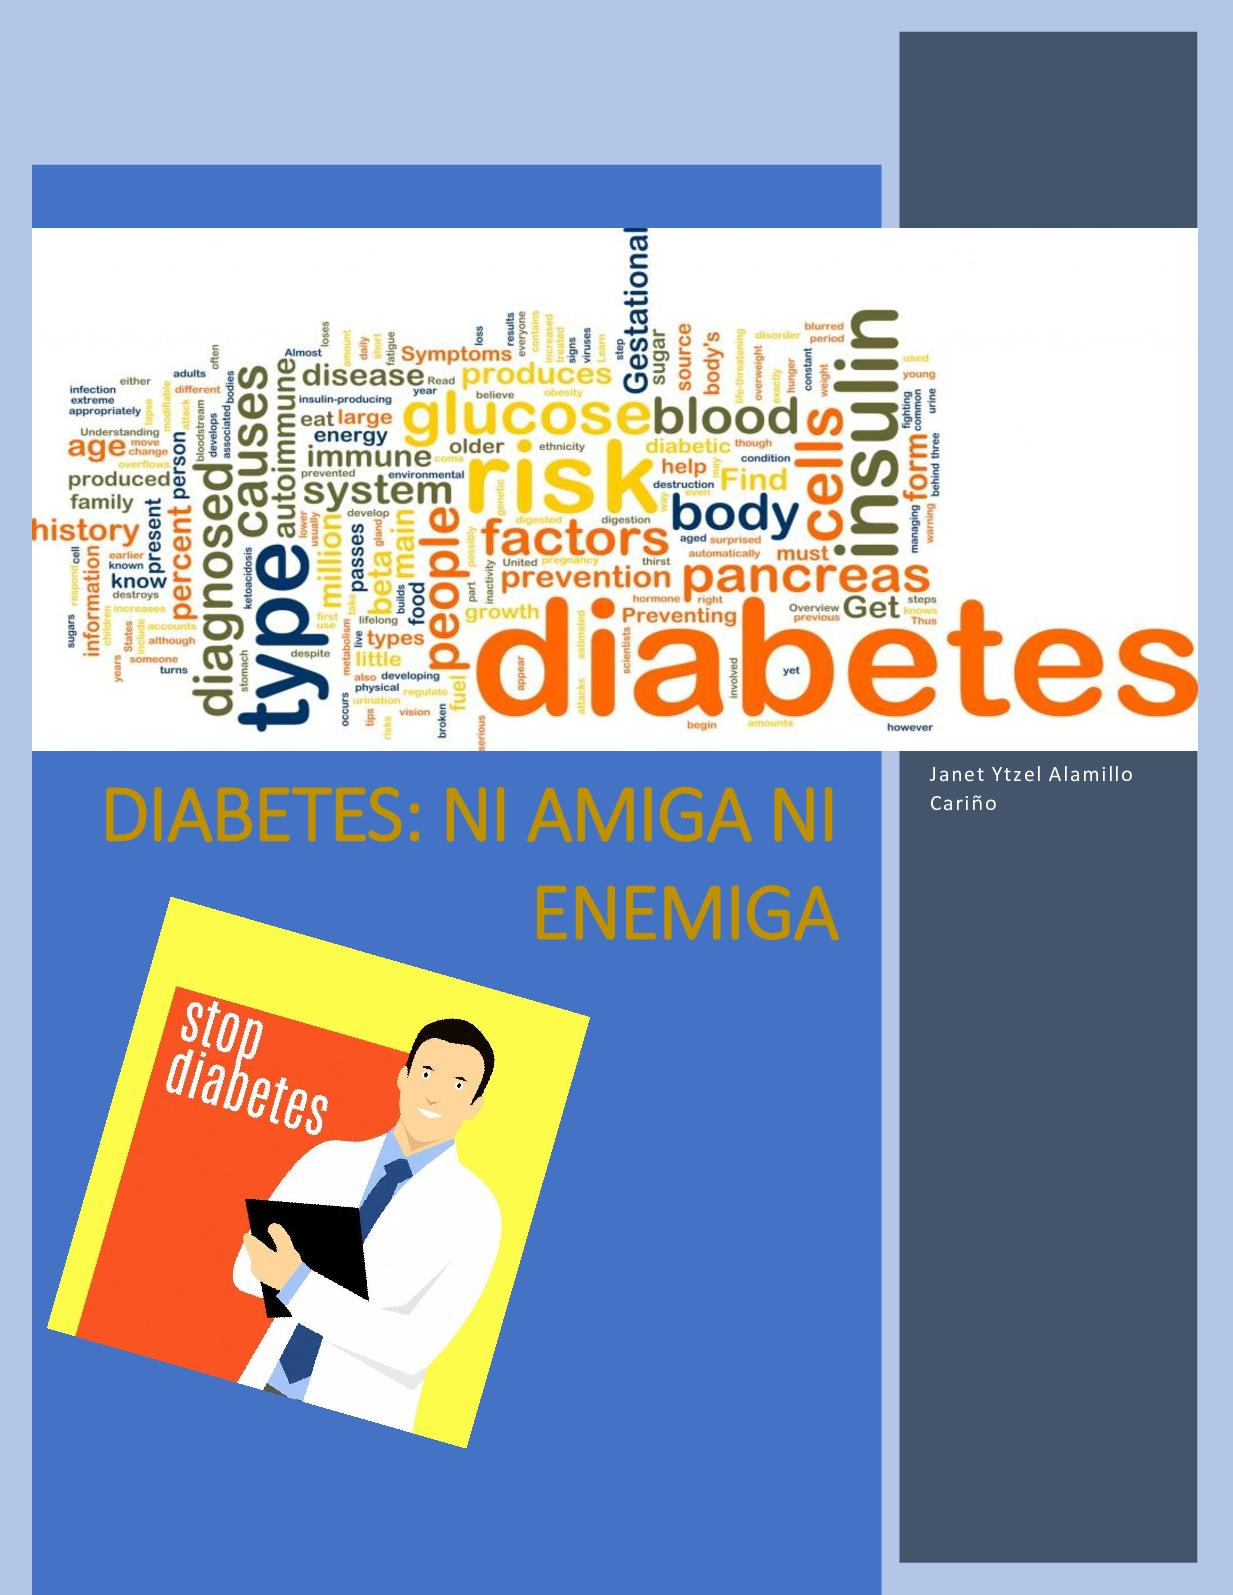 diagnosticar diabetes glucosa al azar